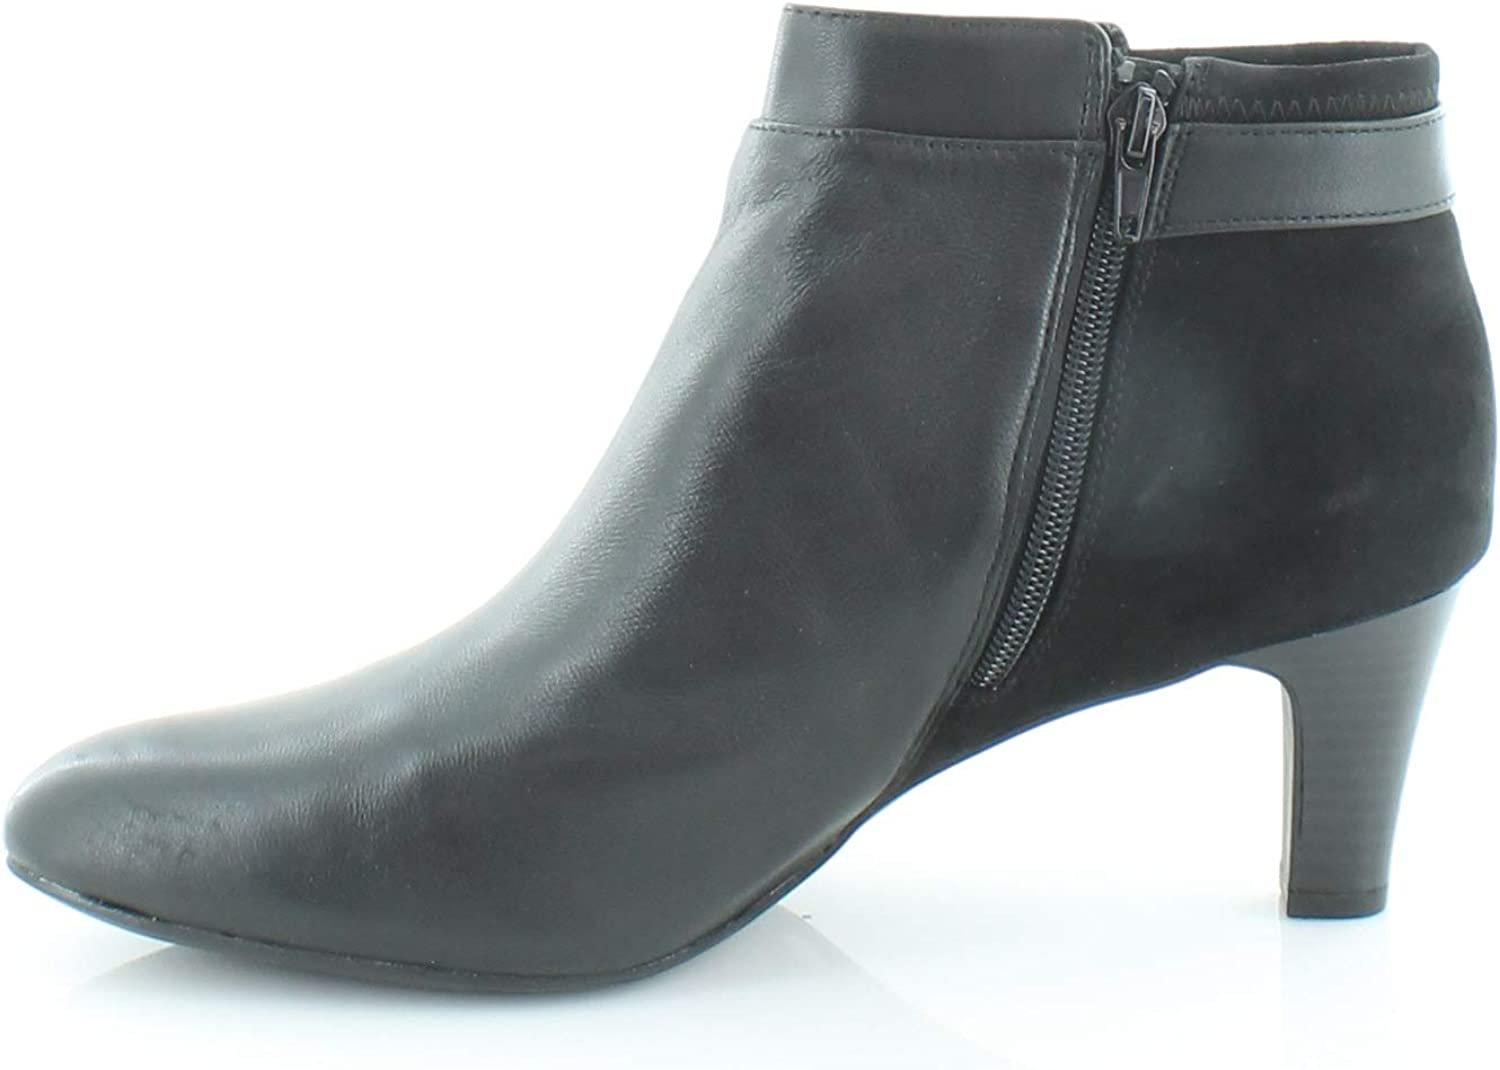 Black Leather Size 12.0 Alfani Womens Viollet Suede Suede Closed Toe Ankle